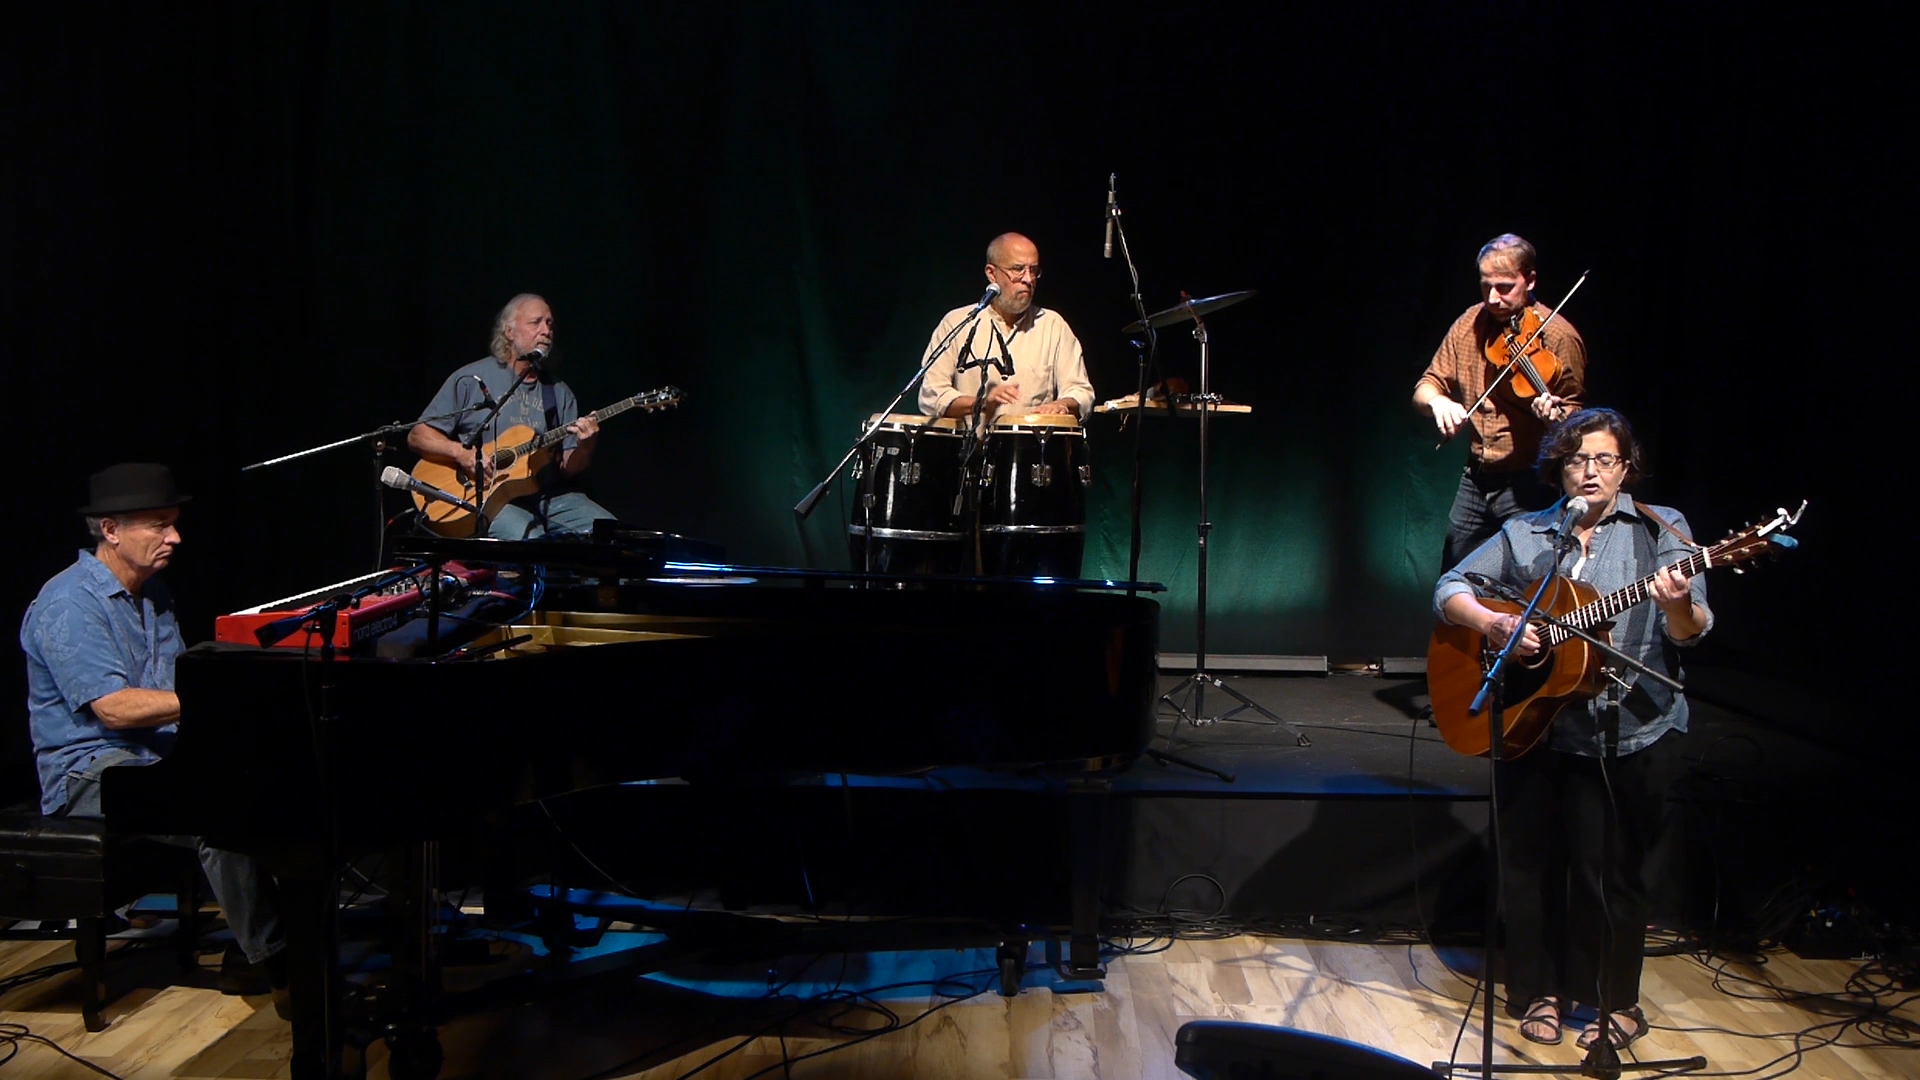 The Pam Ortiz Band with Philip Dutton on piano, Ford Schumann on guitar, Bob Ortiz on percussion, Nevin Dawson on viola and Pam Ortiz on guitar.